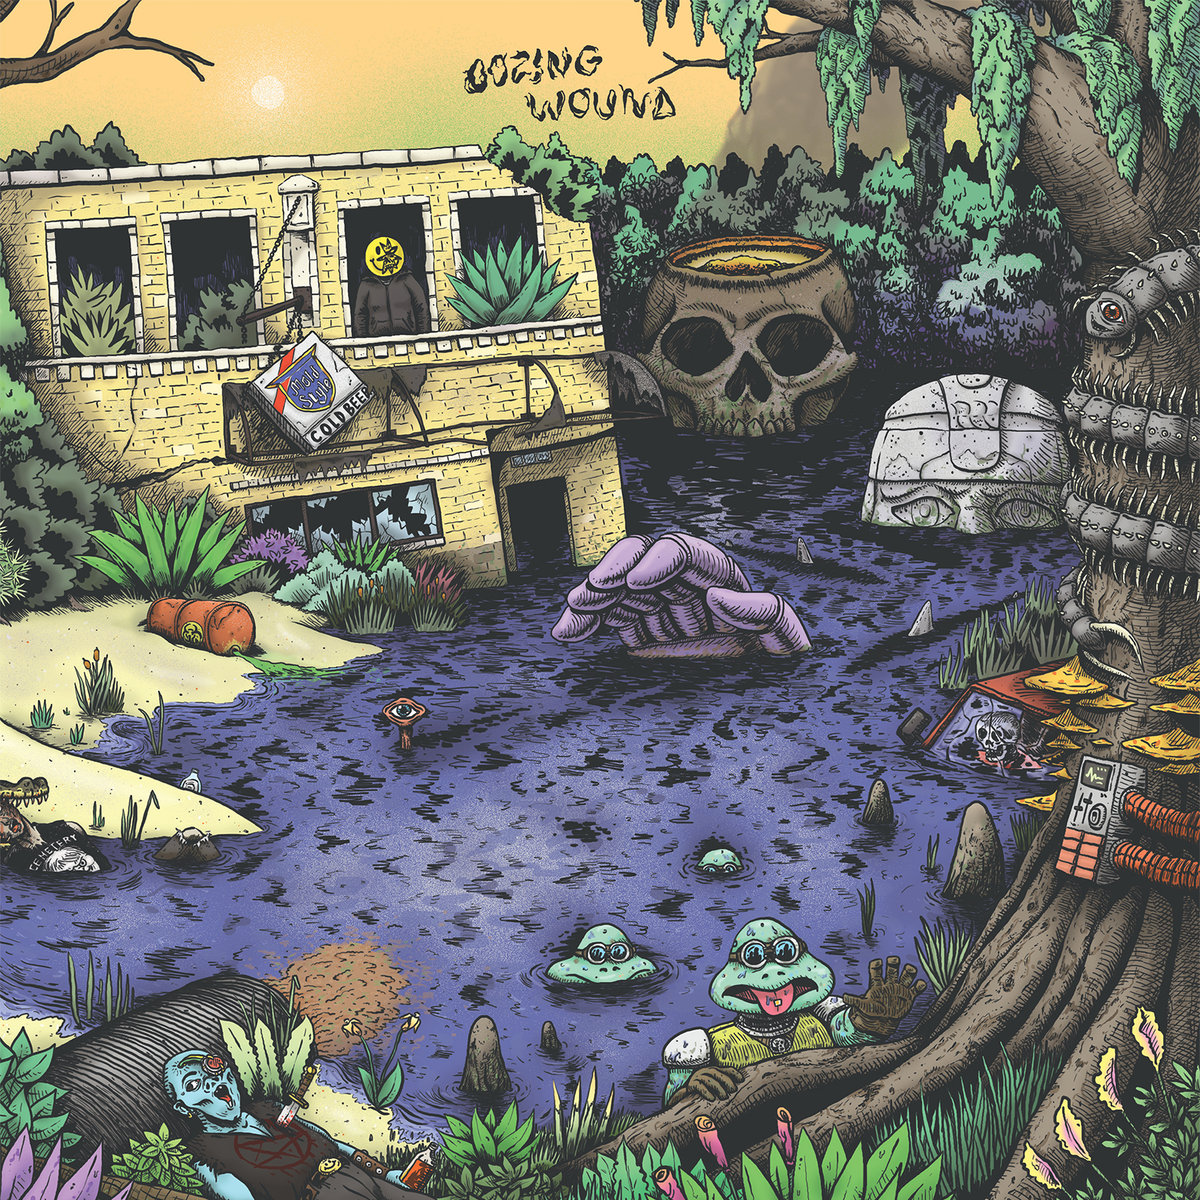 Oozing Wound essential track